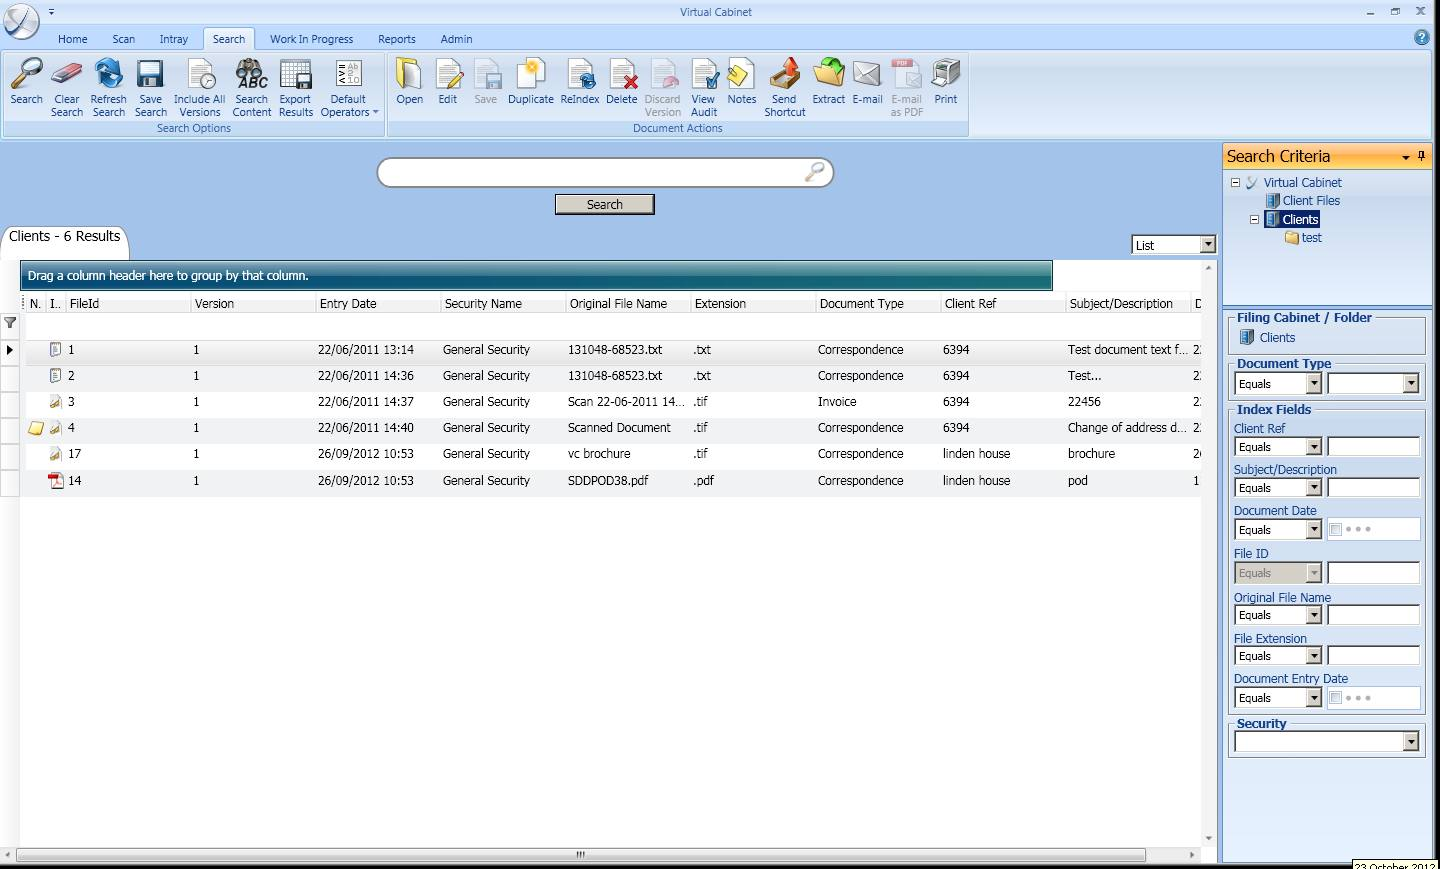 Virtual Cabinet Document Management Software, Hosted Document Management